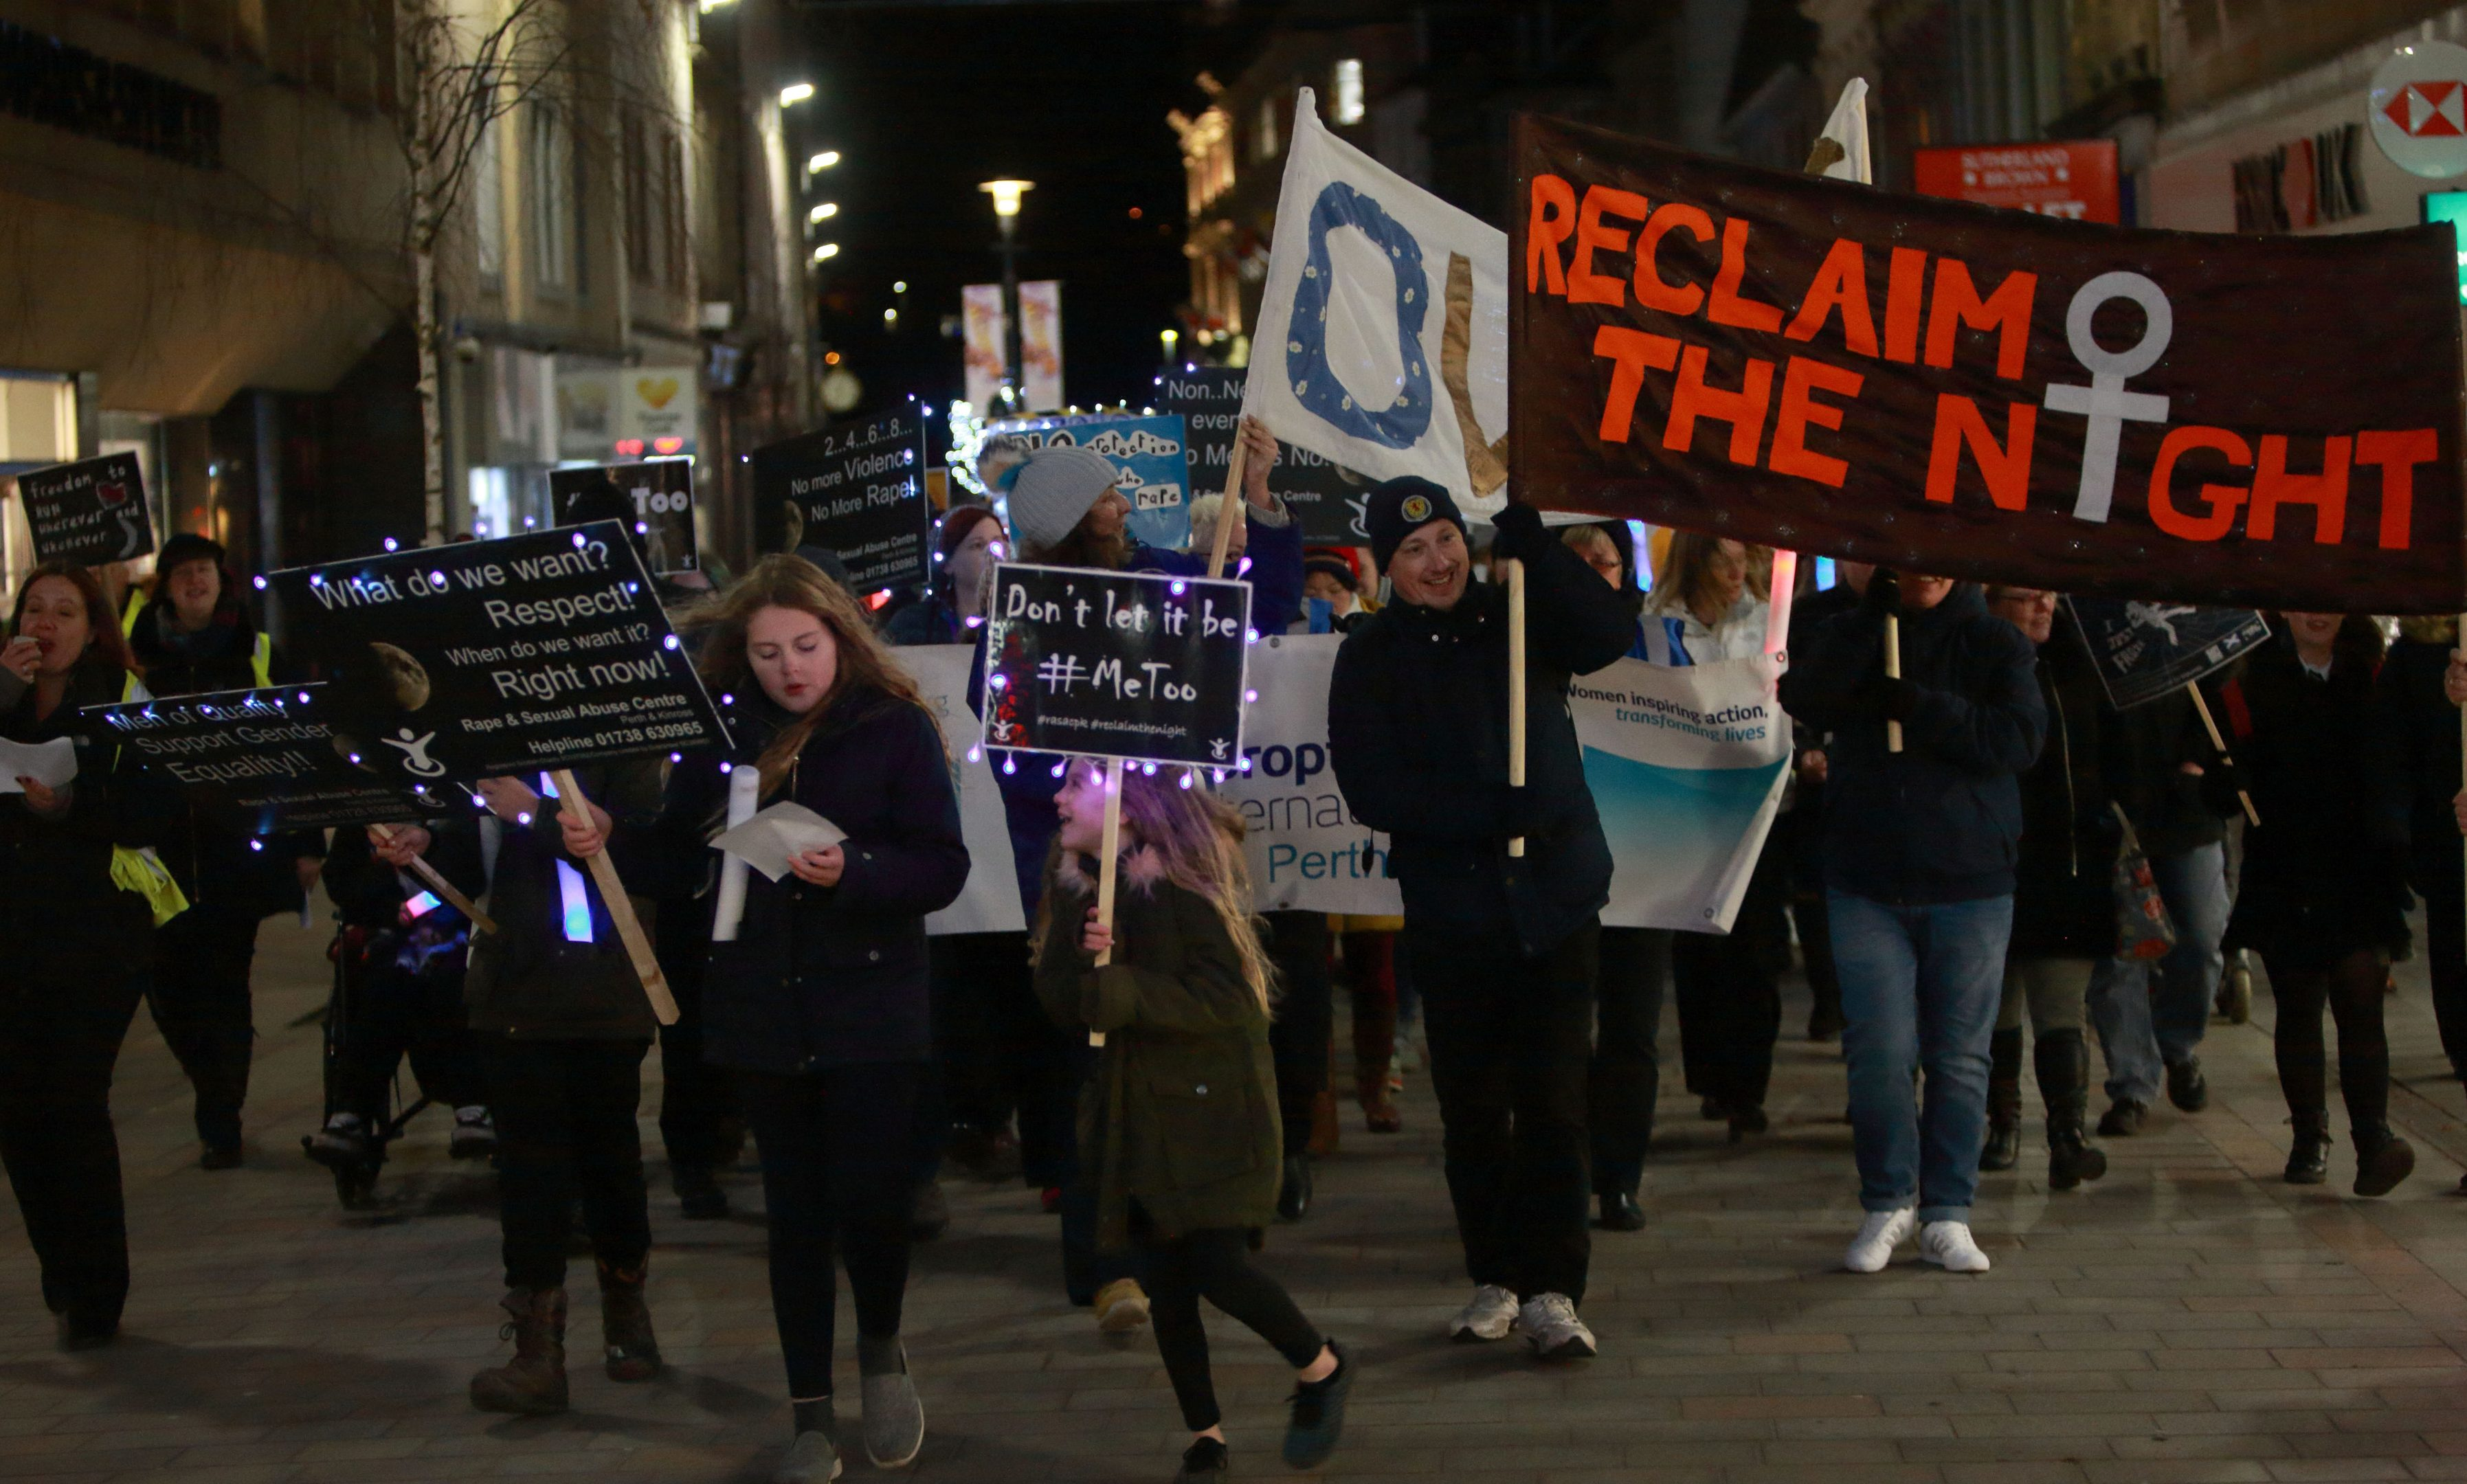 The Reclaim the night march through Perth, which was partly organised by the local RASAC team, in 2017.